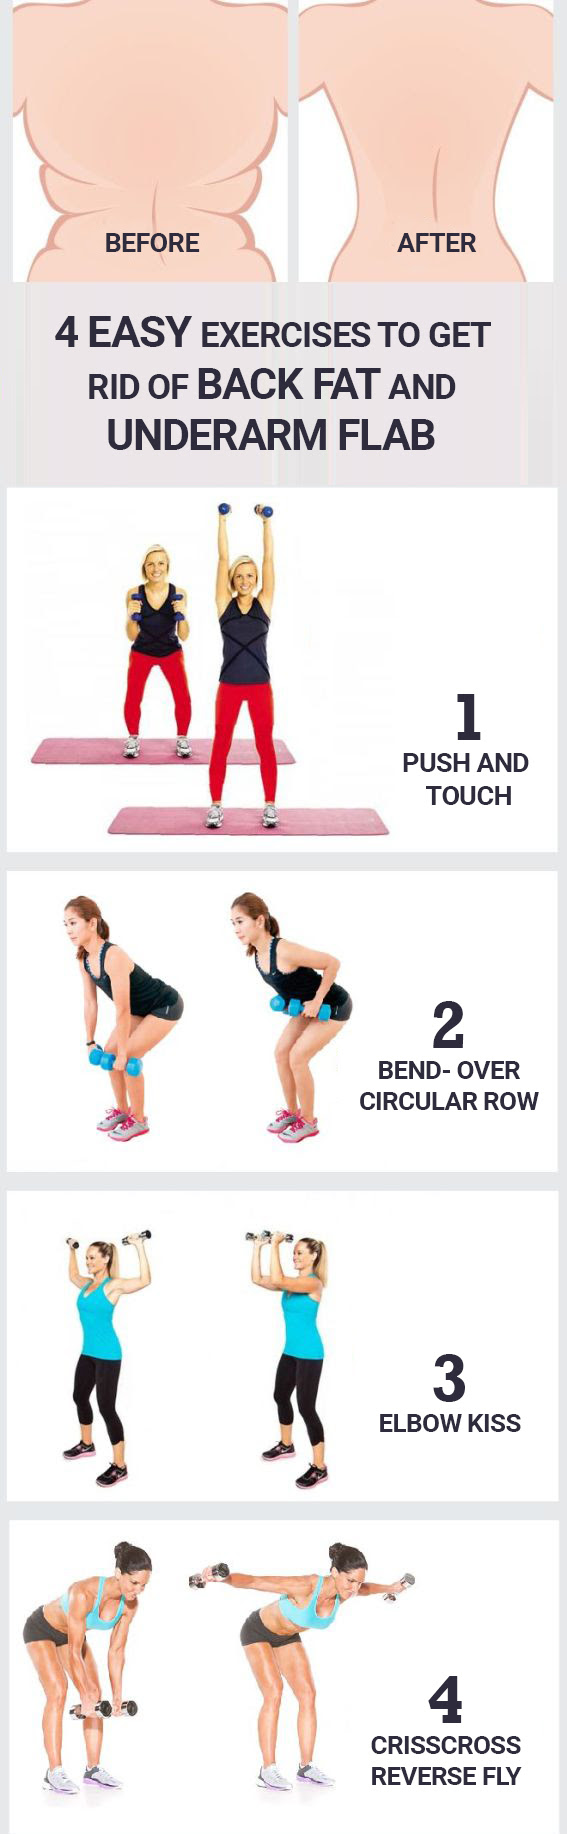 69 INFO EASY UNDERARM EXERCISES WITH VIDEO TUTORIAL ...